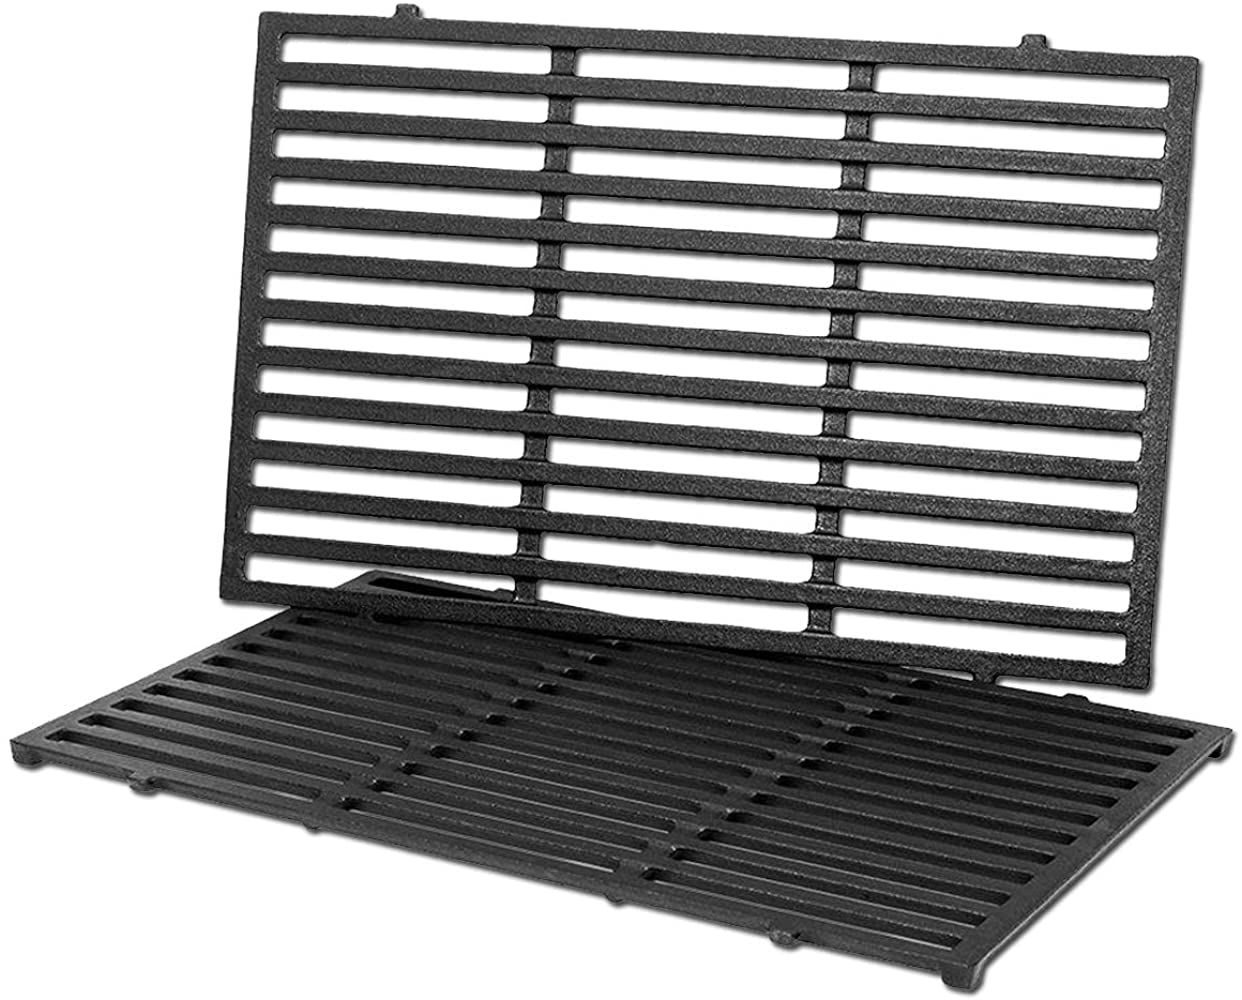 Utheer 17 5 Inch 7638 Cooking Grid Grates For Weber Spirit 300 310 Spirit 700 Spirit E S 310 E S 320 E S 330 Weber 900 Gen In 2020 Cast Iron Cooking Kamado Weber Grill